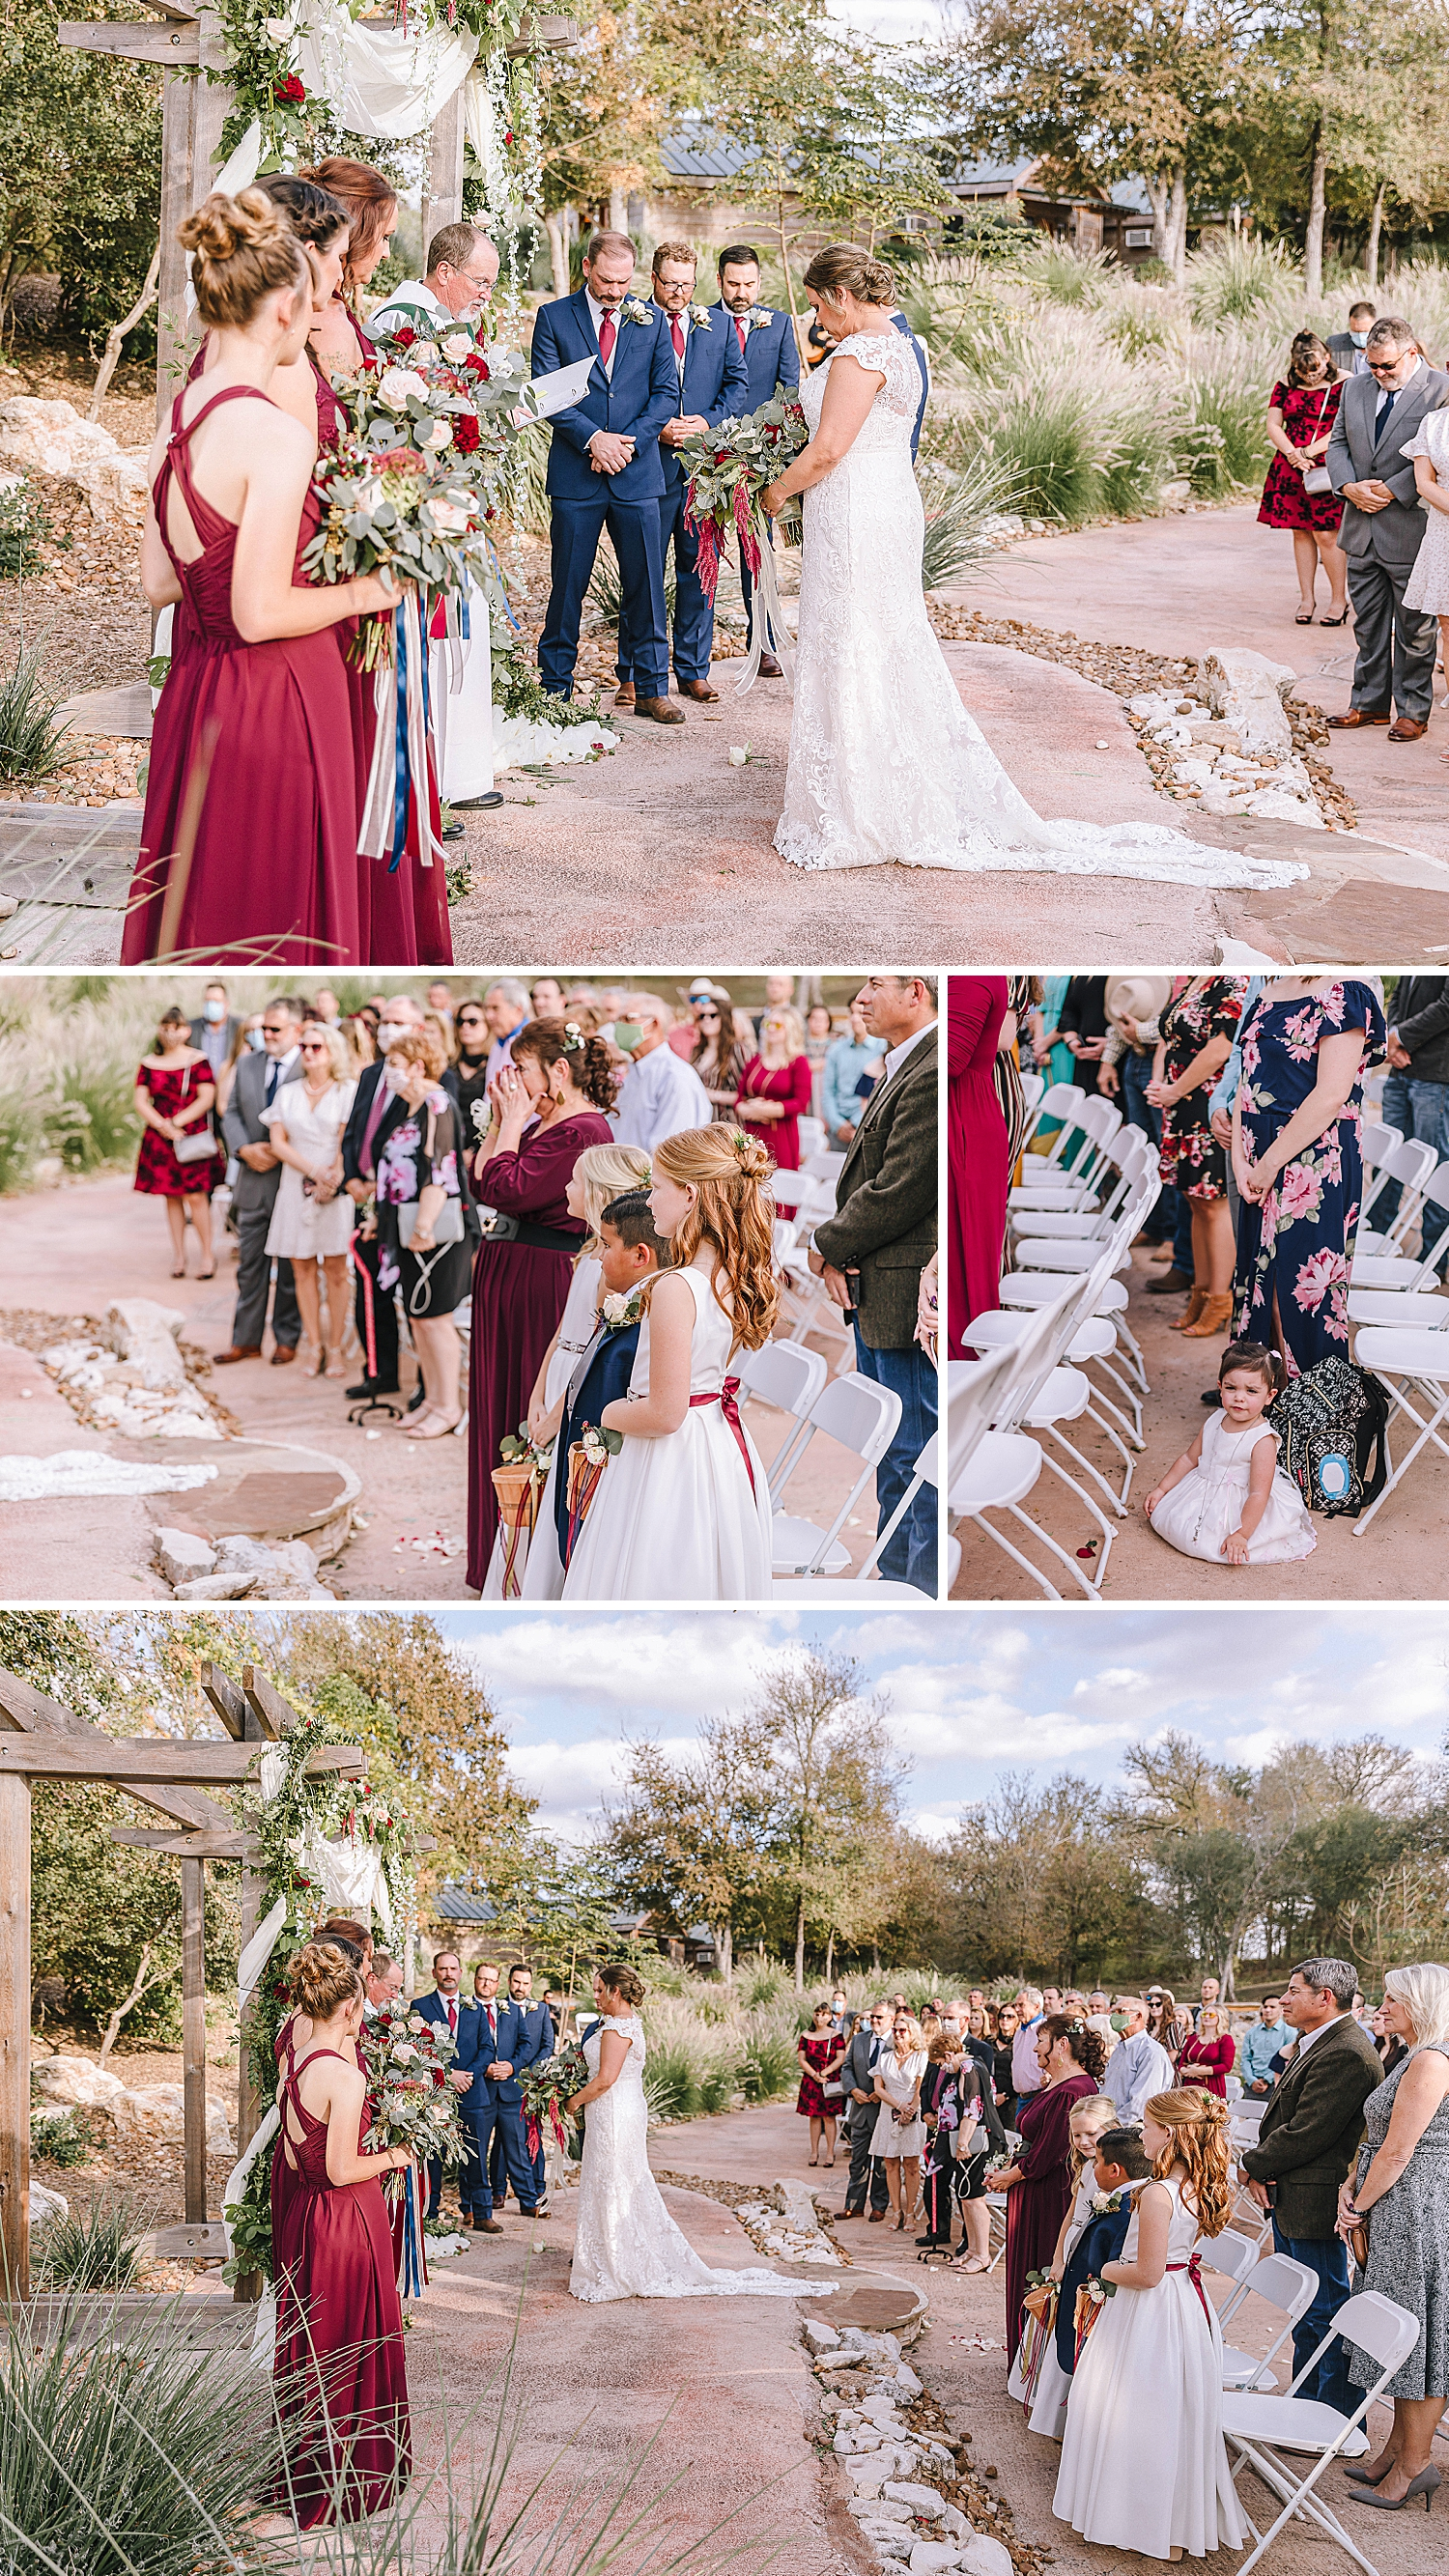 Geronimo-Oaks-Wedding-Venue-Seguin-Texas-Elegant-Navy-Burgundy-Wedding-Carly-Barton-Photography_0020.jpg